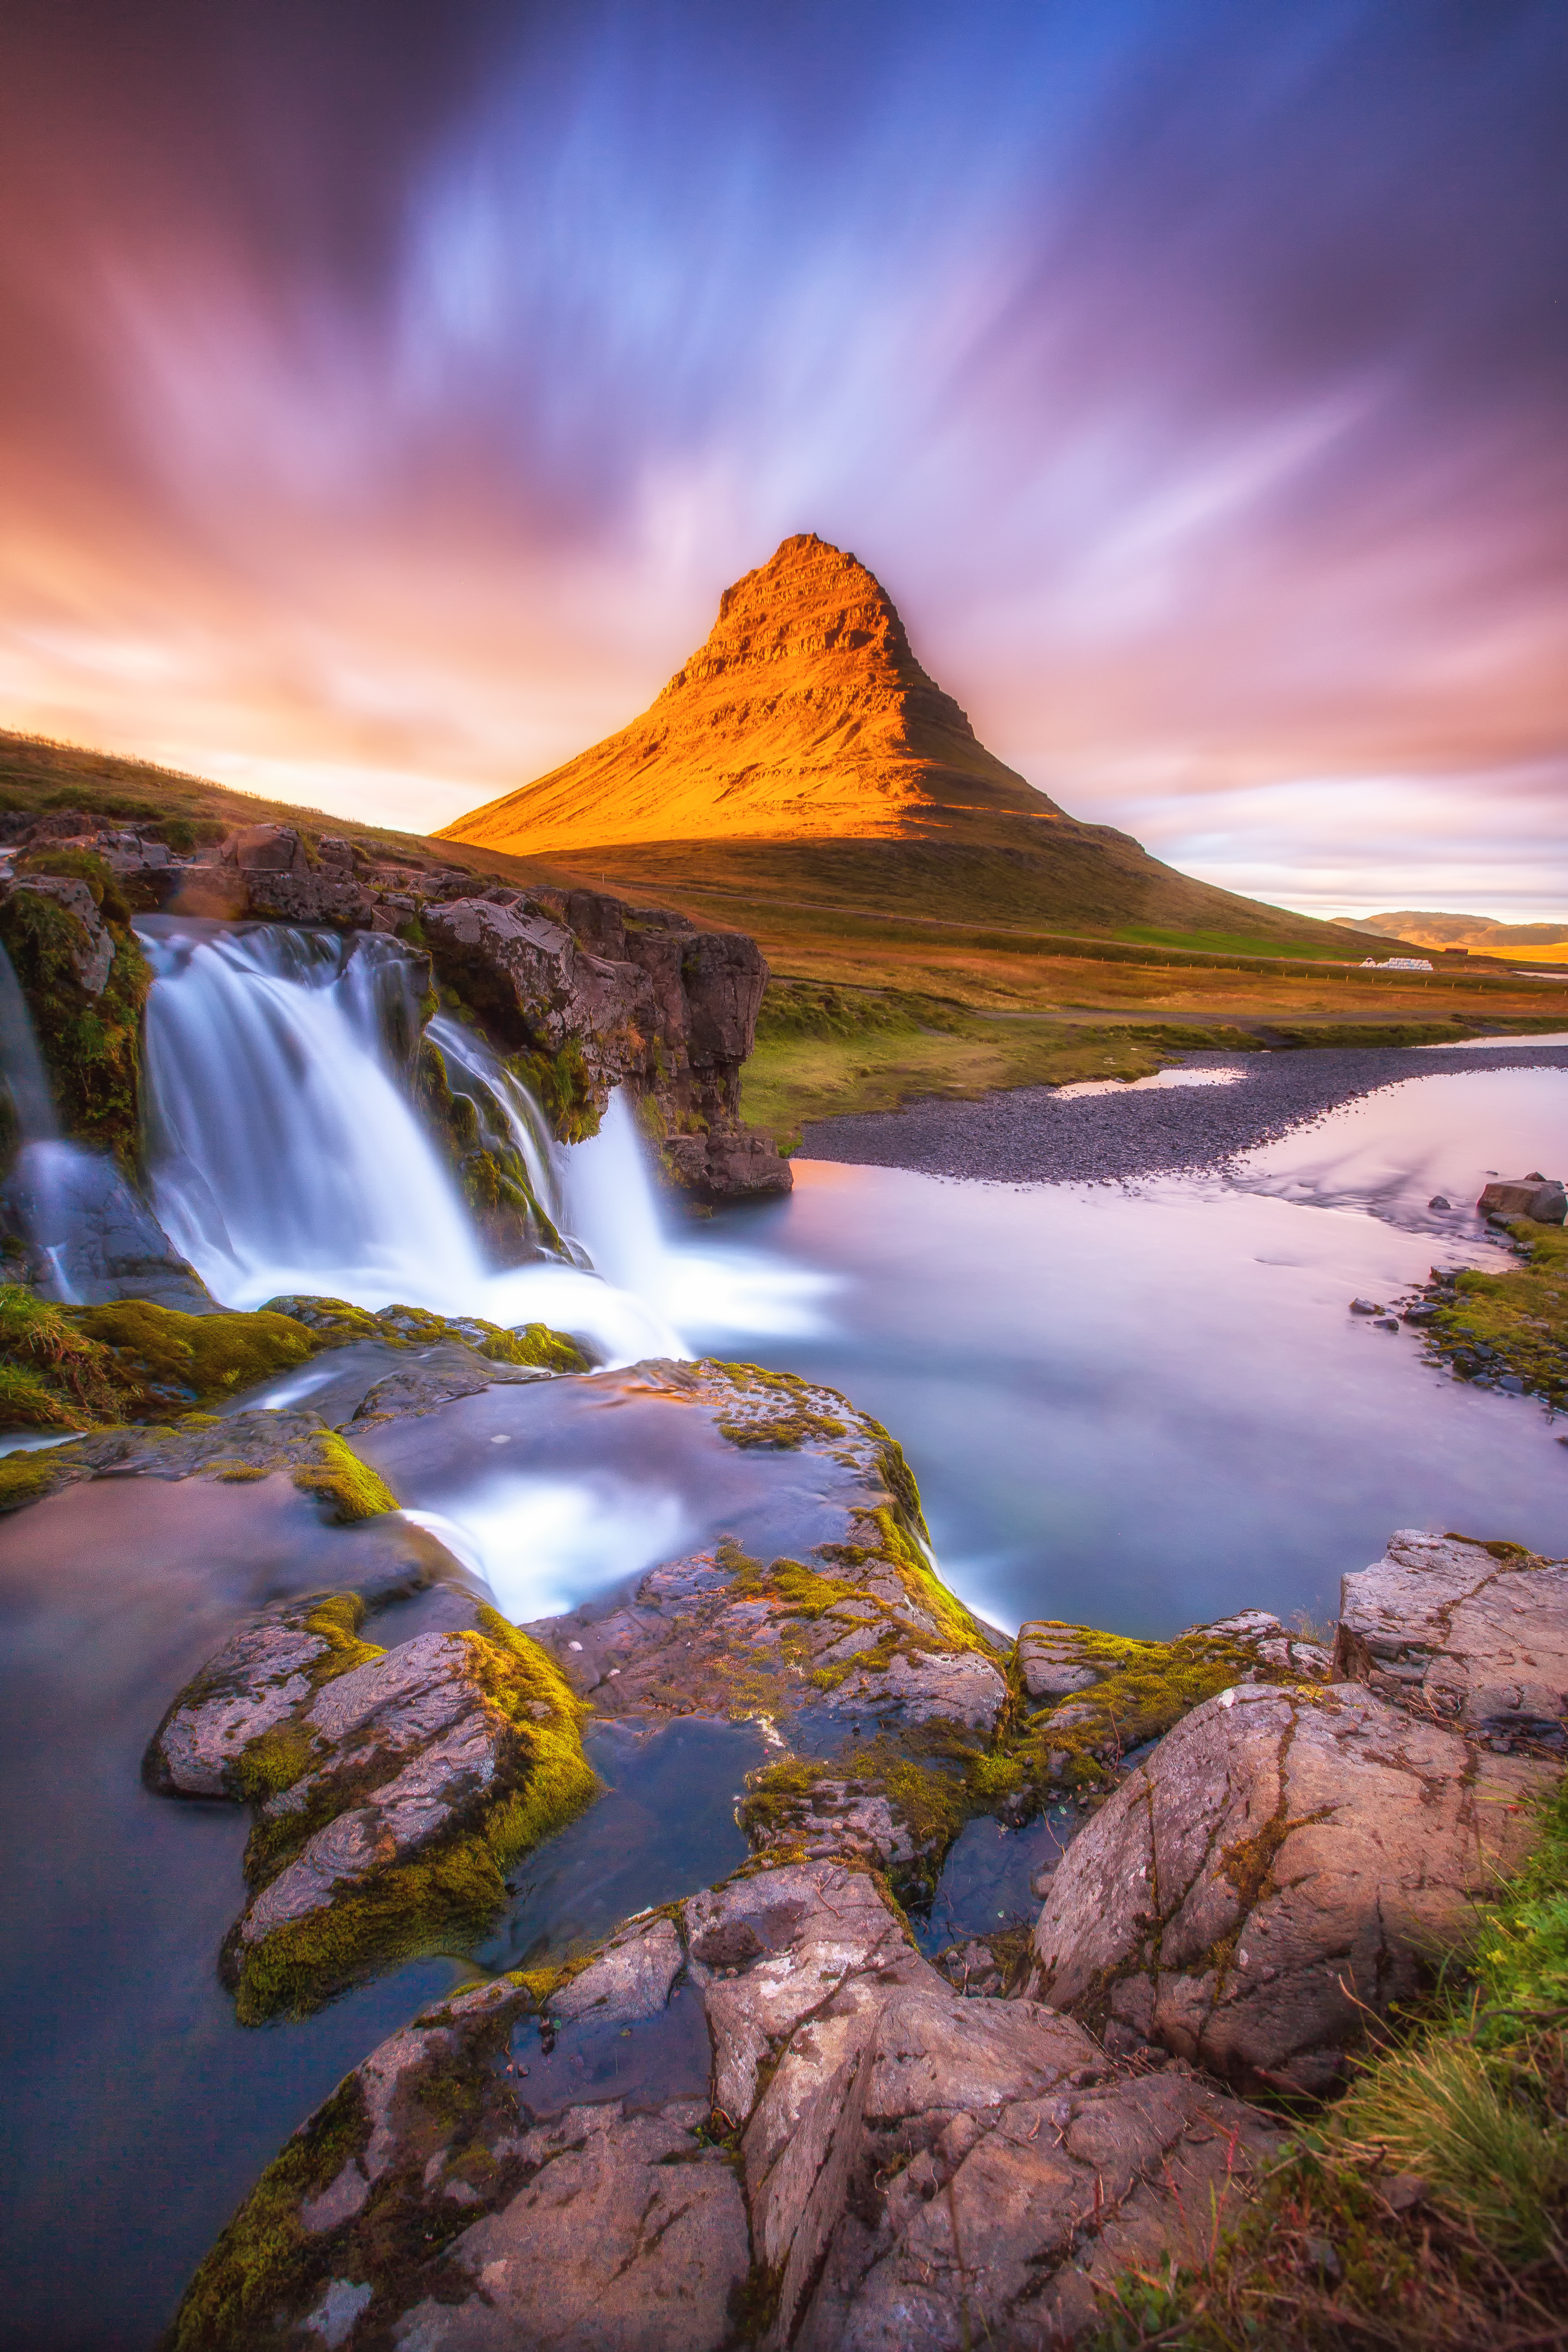 Stunning Fall Wallpapers 500 Waterfall Images Stunning Download Free Pictures